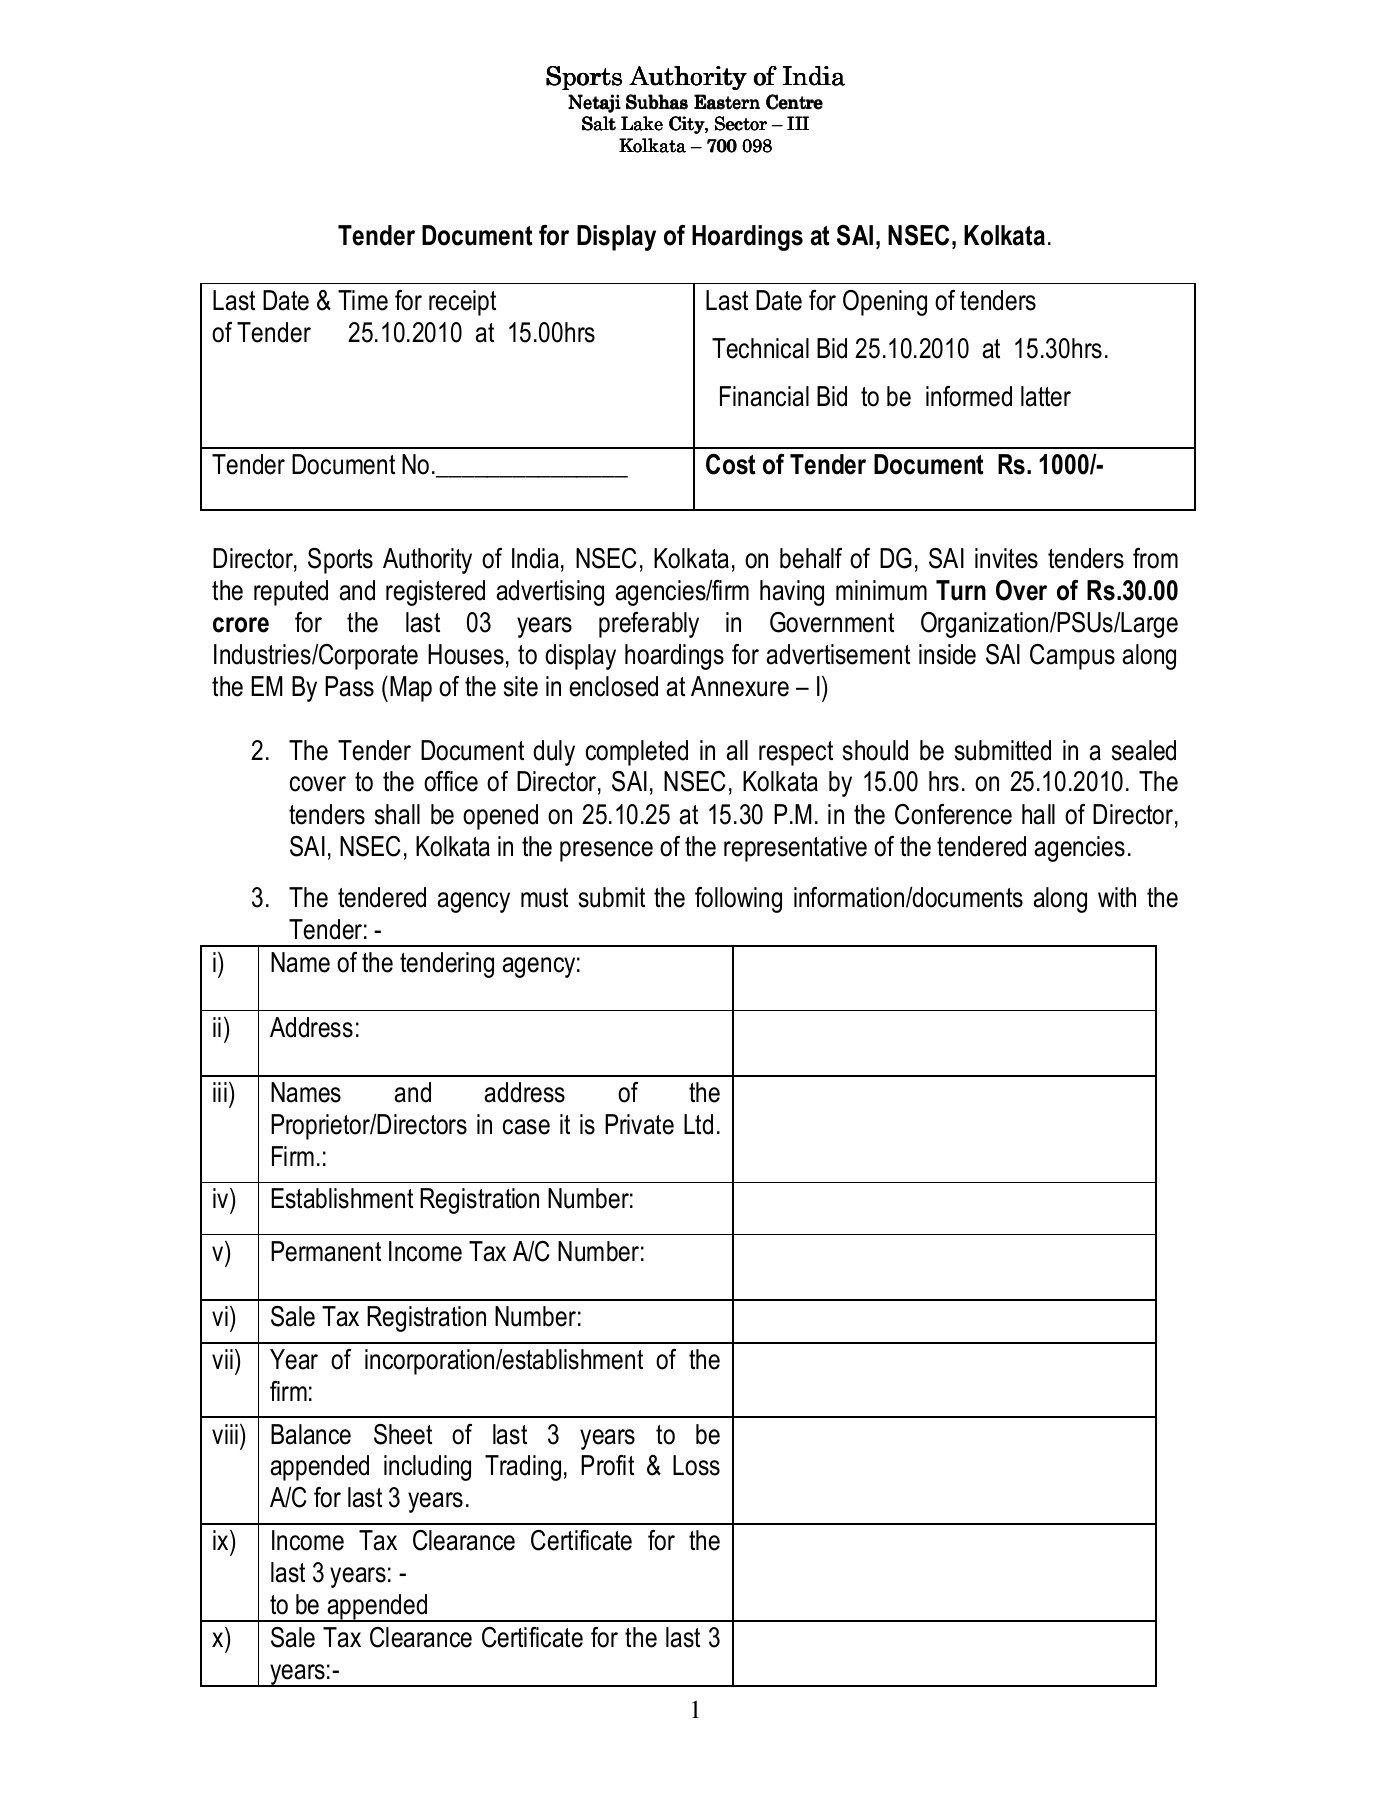 Tender Document for Display of Hoardings at SAI, NSEC, Kolkata Pages